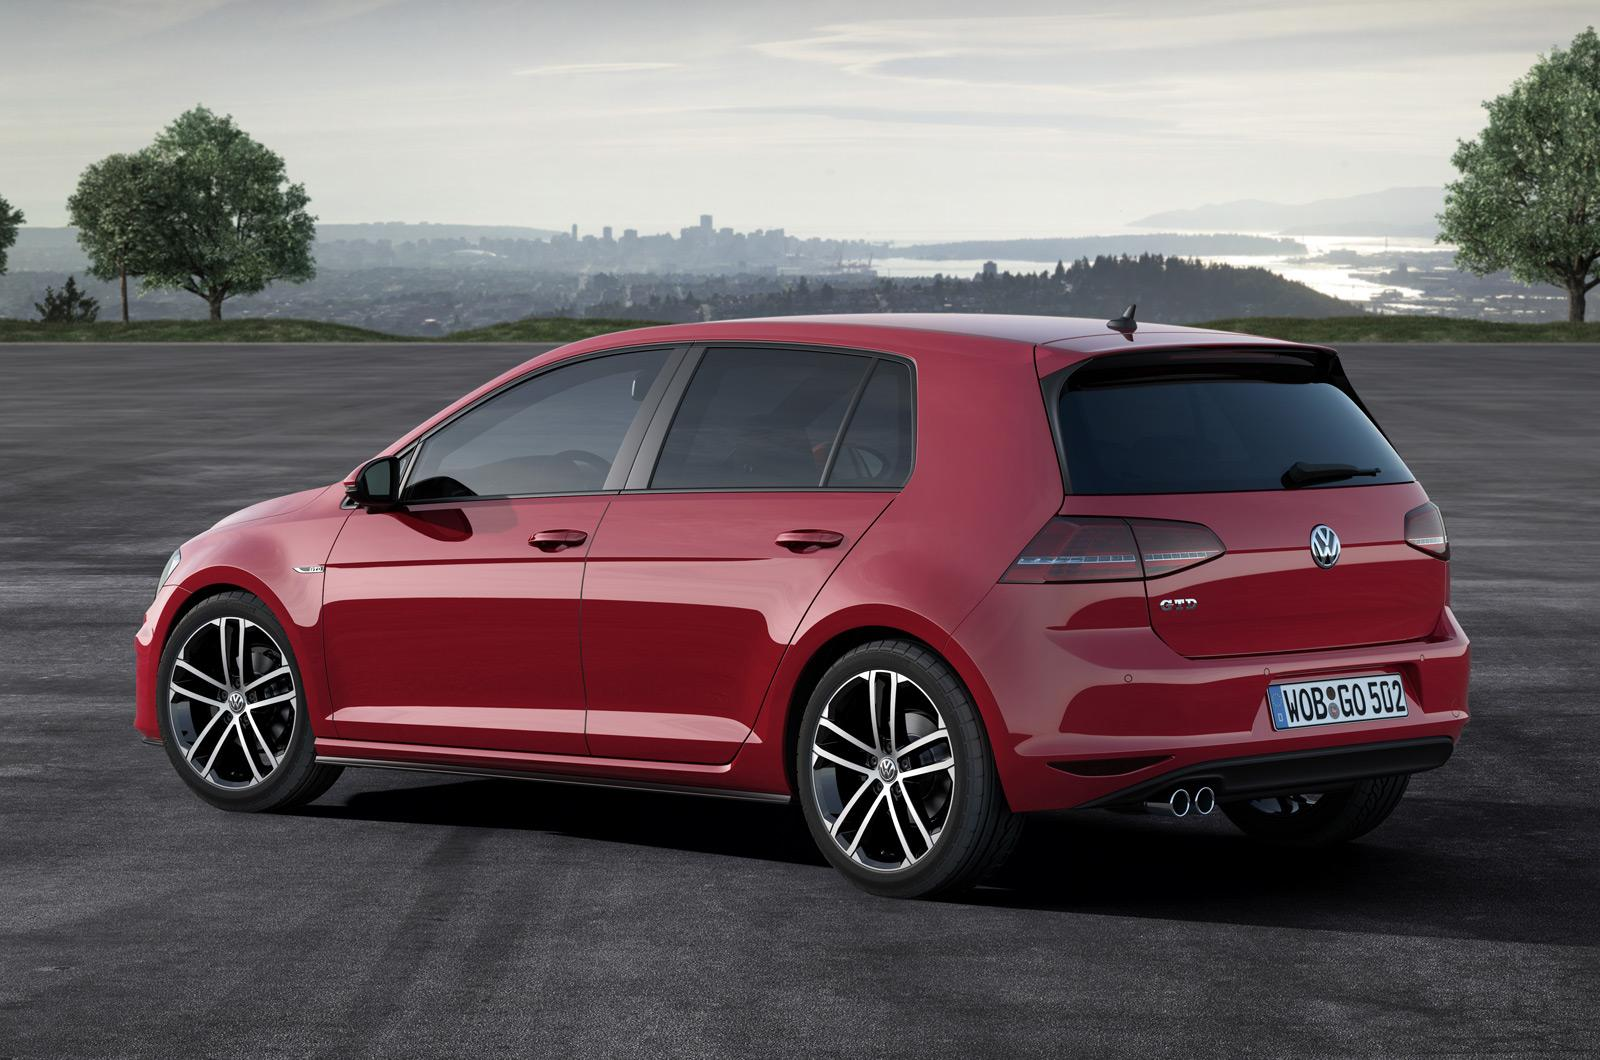 volkswagen cars news 2013 mk7 golf gtd uncovered. Black Bedroom Furniture Sets. Home Design Ideas